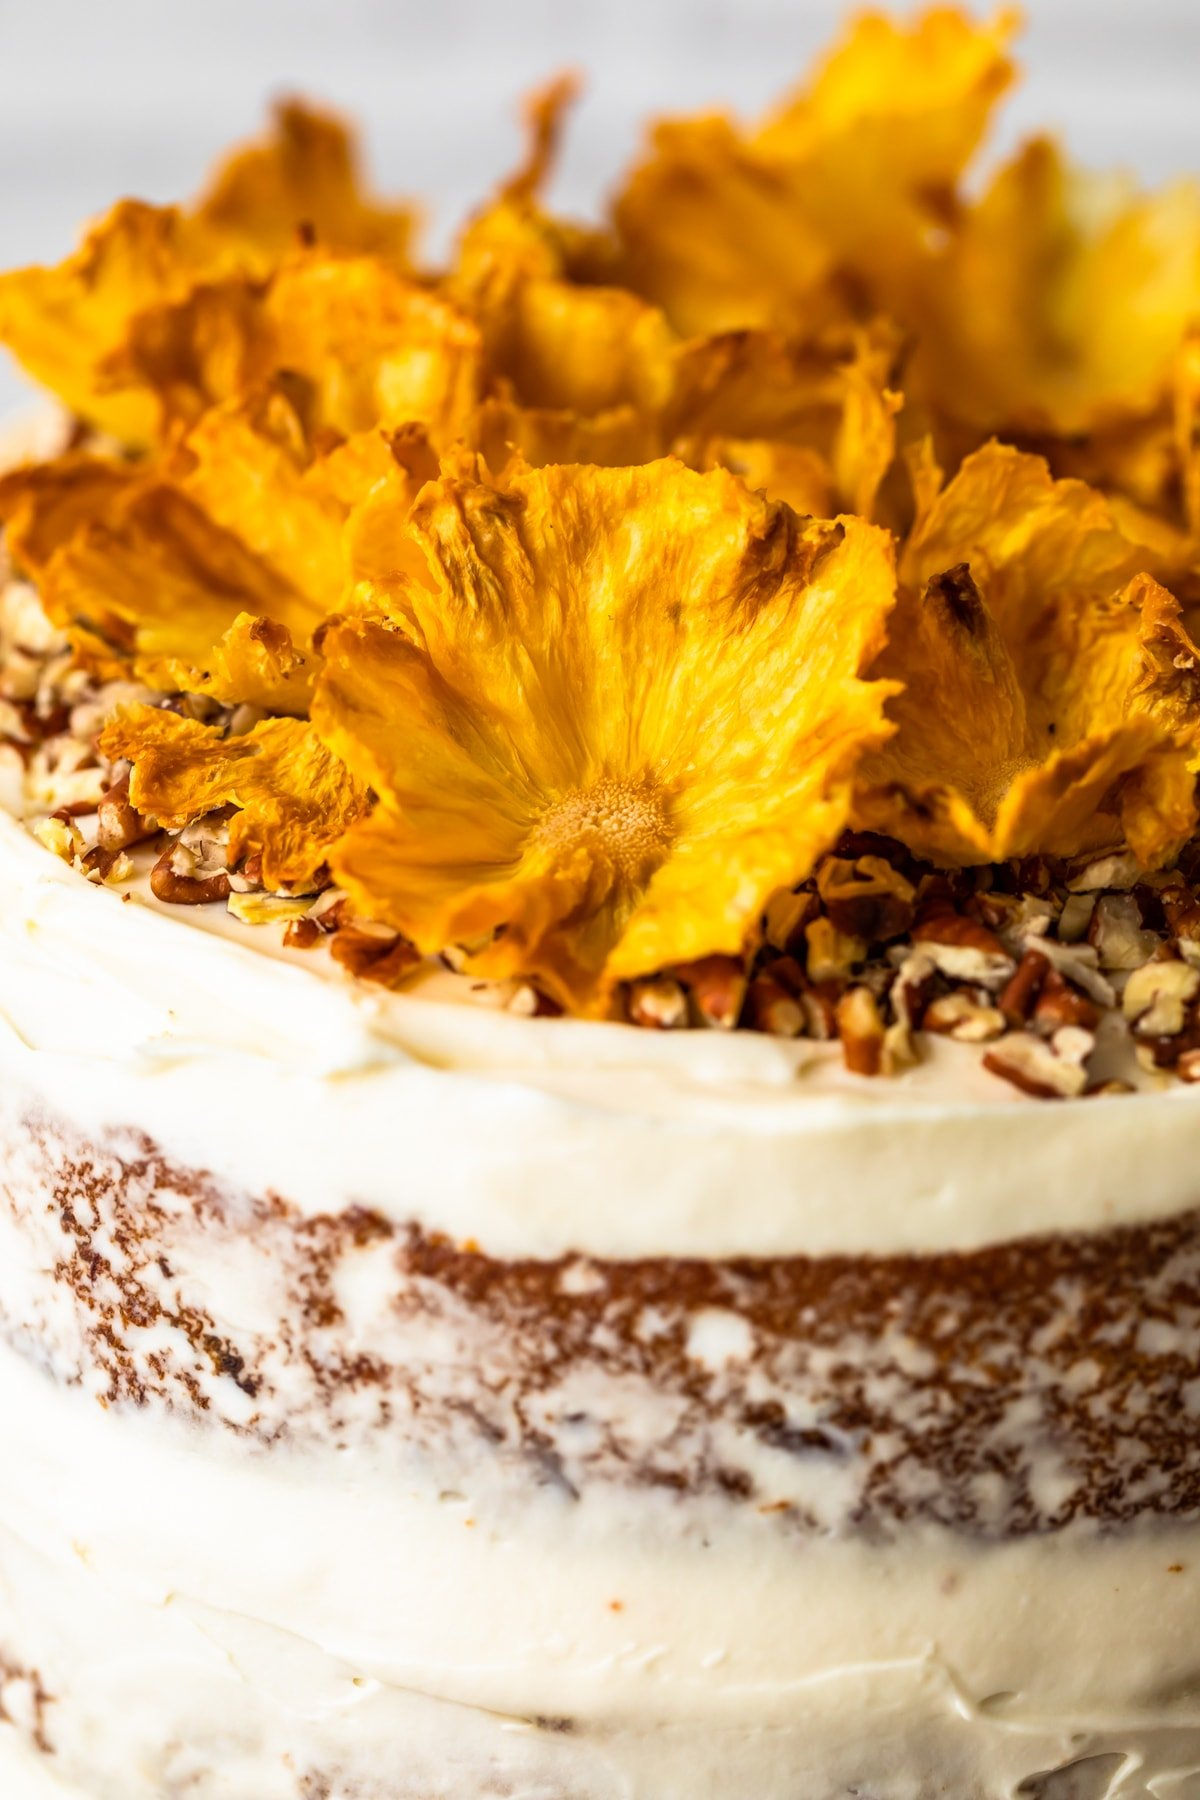 dried pineapple flowers on a cake